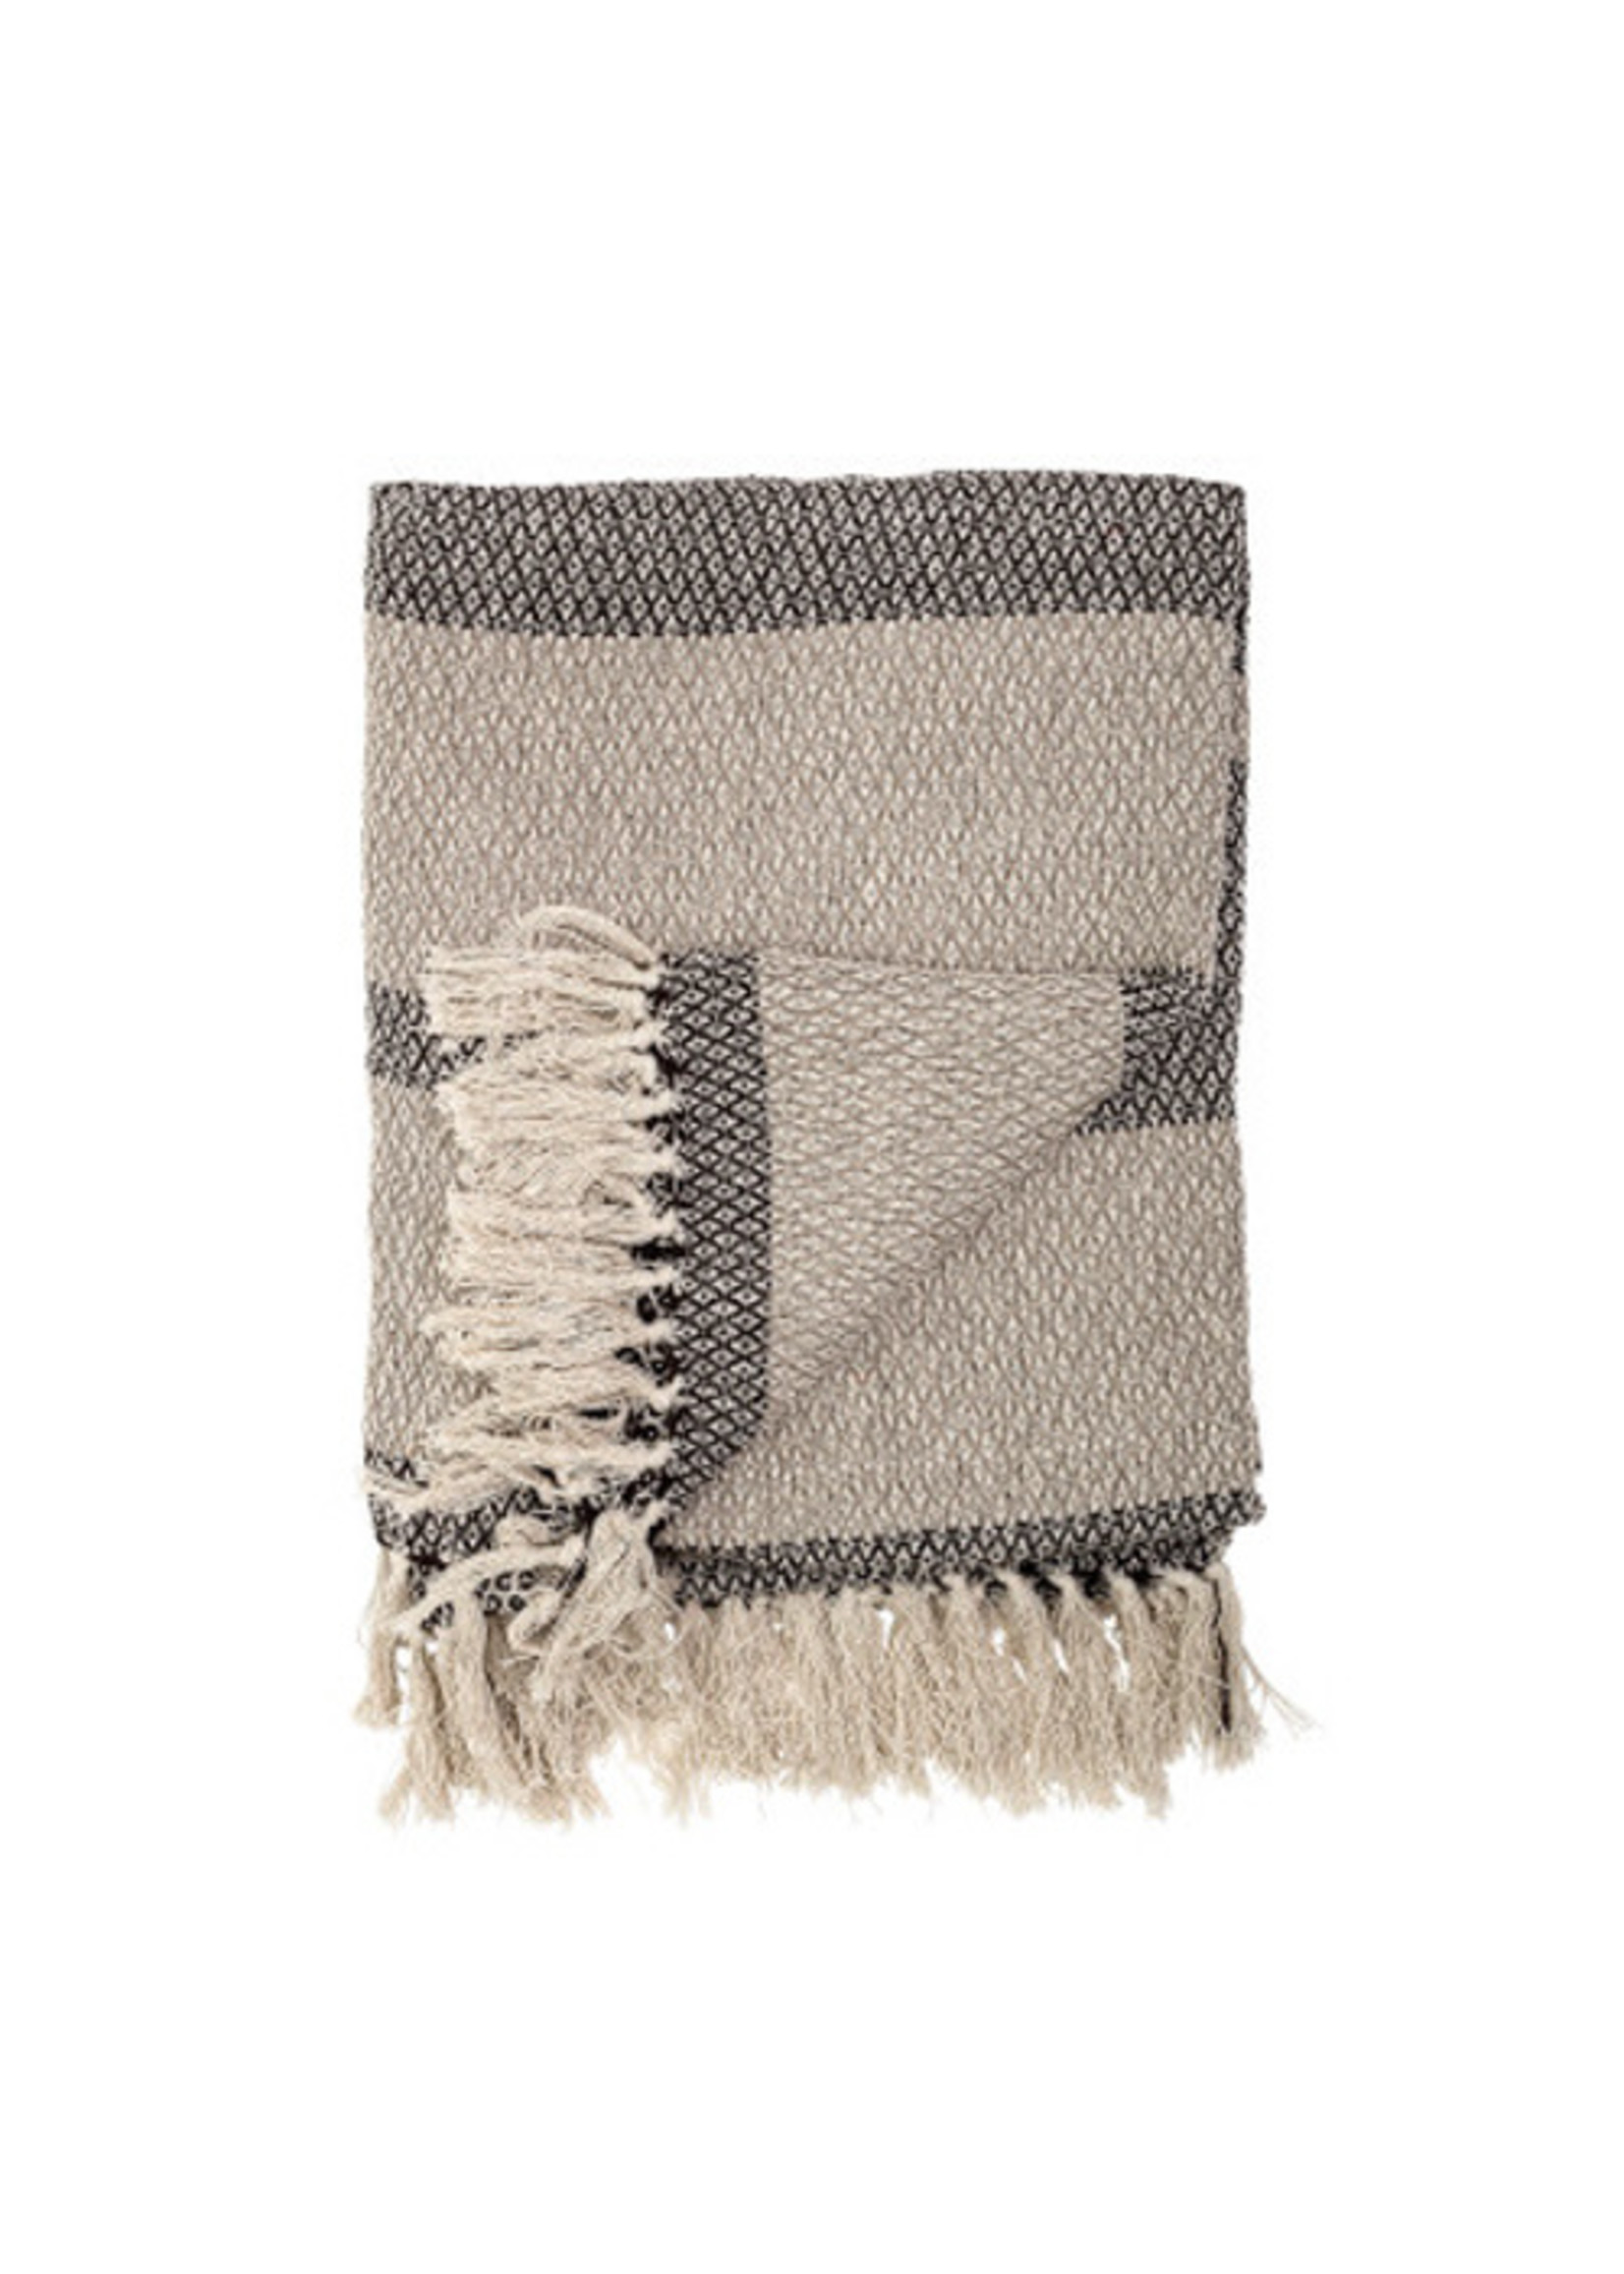 Recycled Cotton Blend Knit Throw with Stripes and Fringe